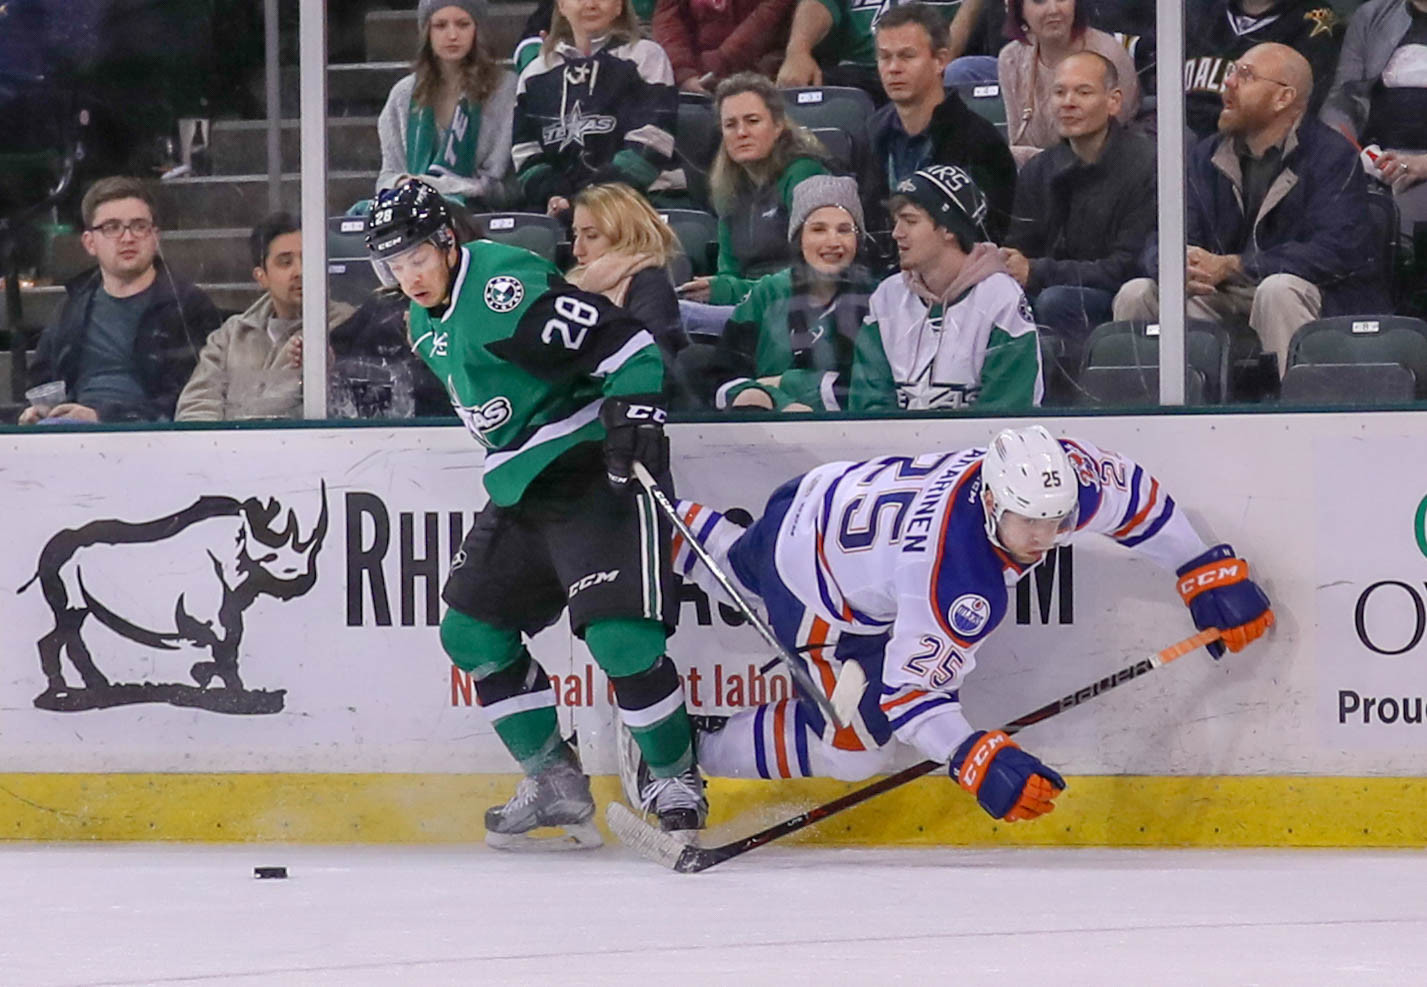 Brent Regner scored two goals and Texas trounced the Stockton Heat 7-2 on the road Friday night. It was the most goals the Stars have scored in a game this season.